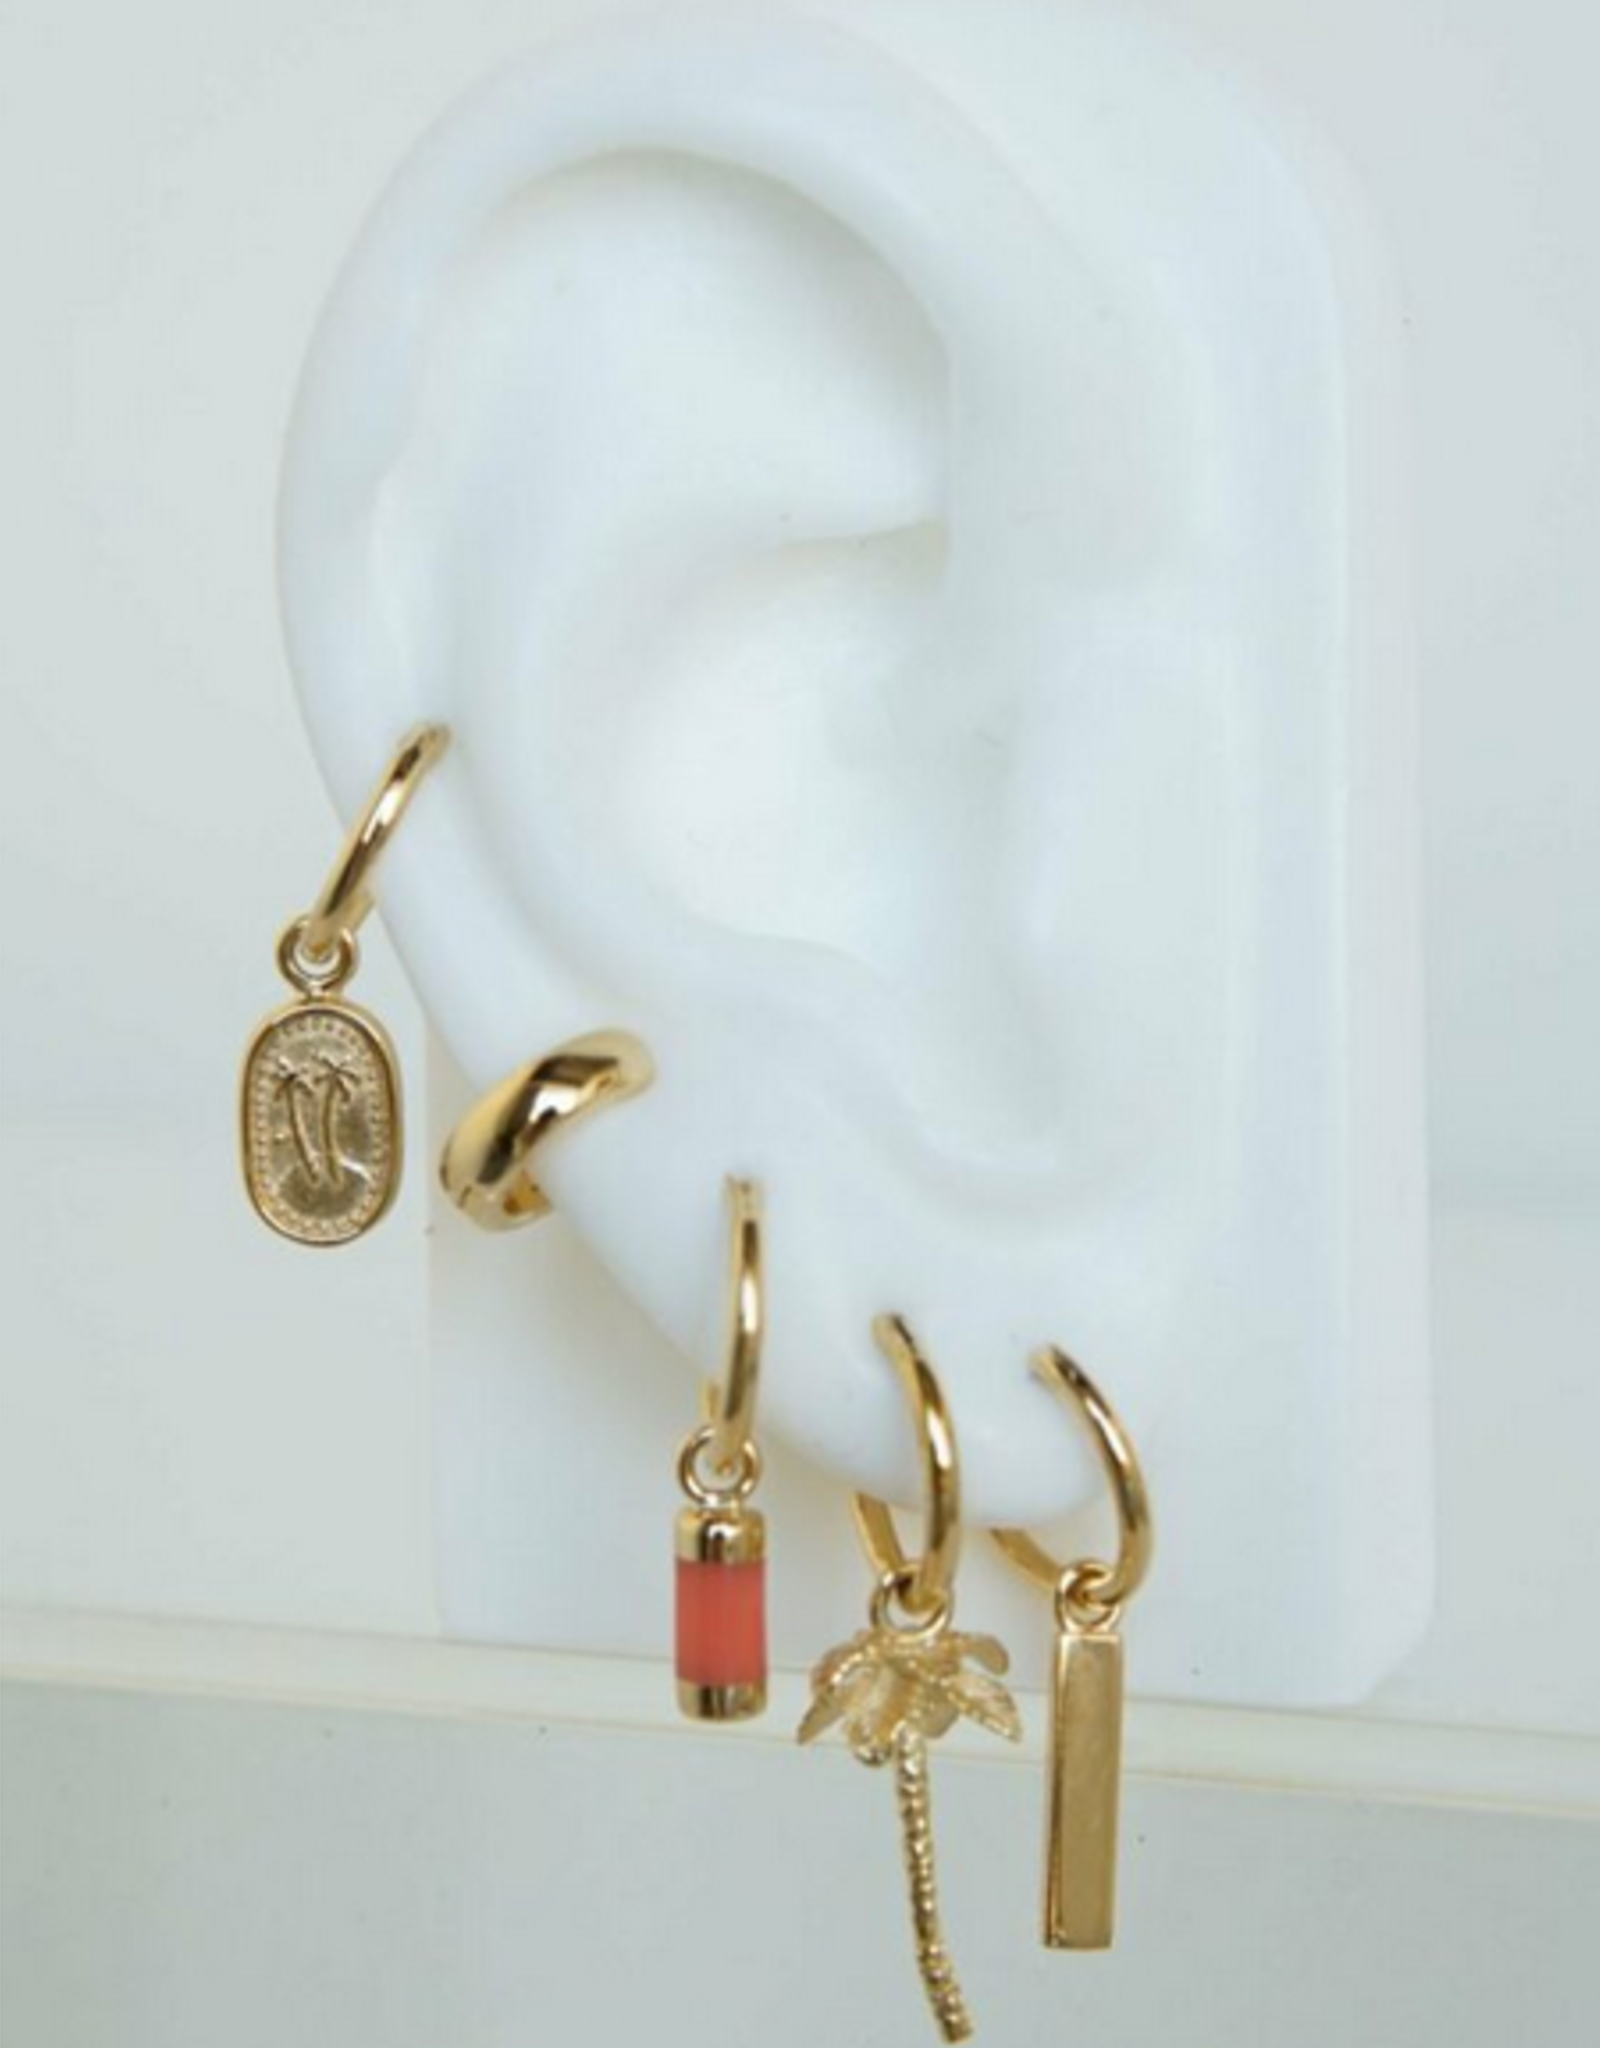 Wildthings Collectables Sunrise earring gold